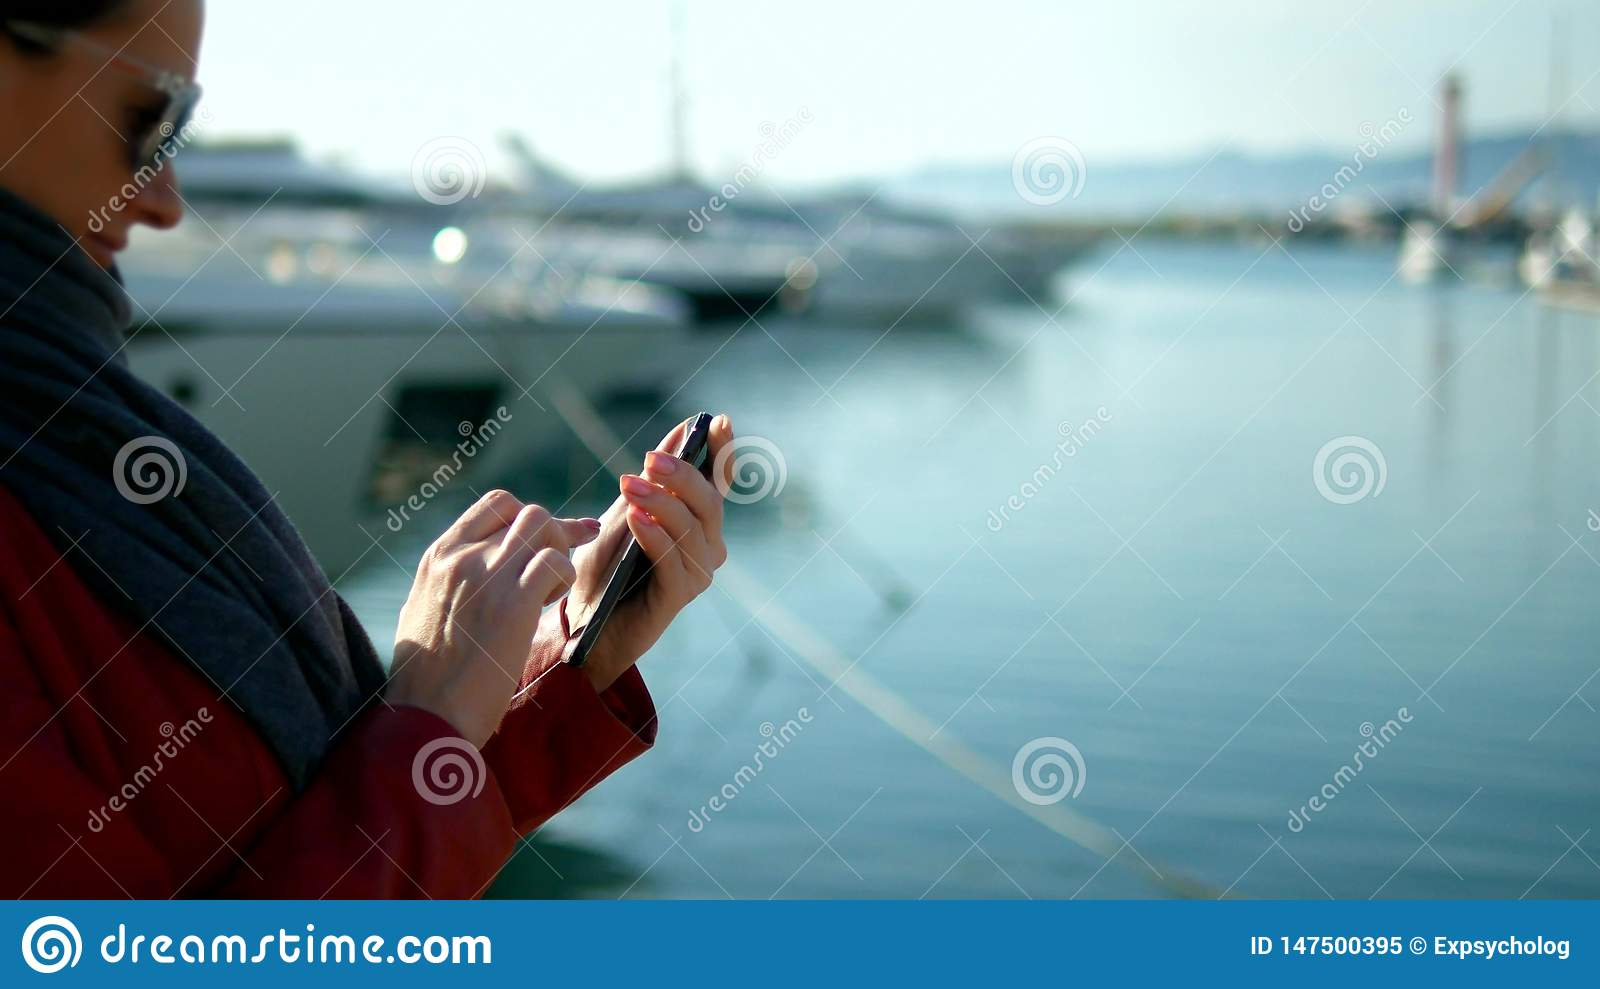 Woman holds smartphone on blurred background of port with yachts